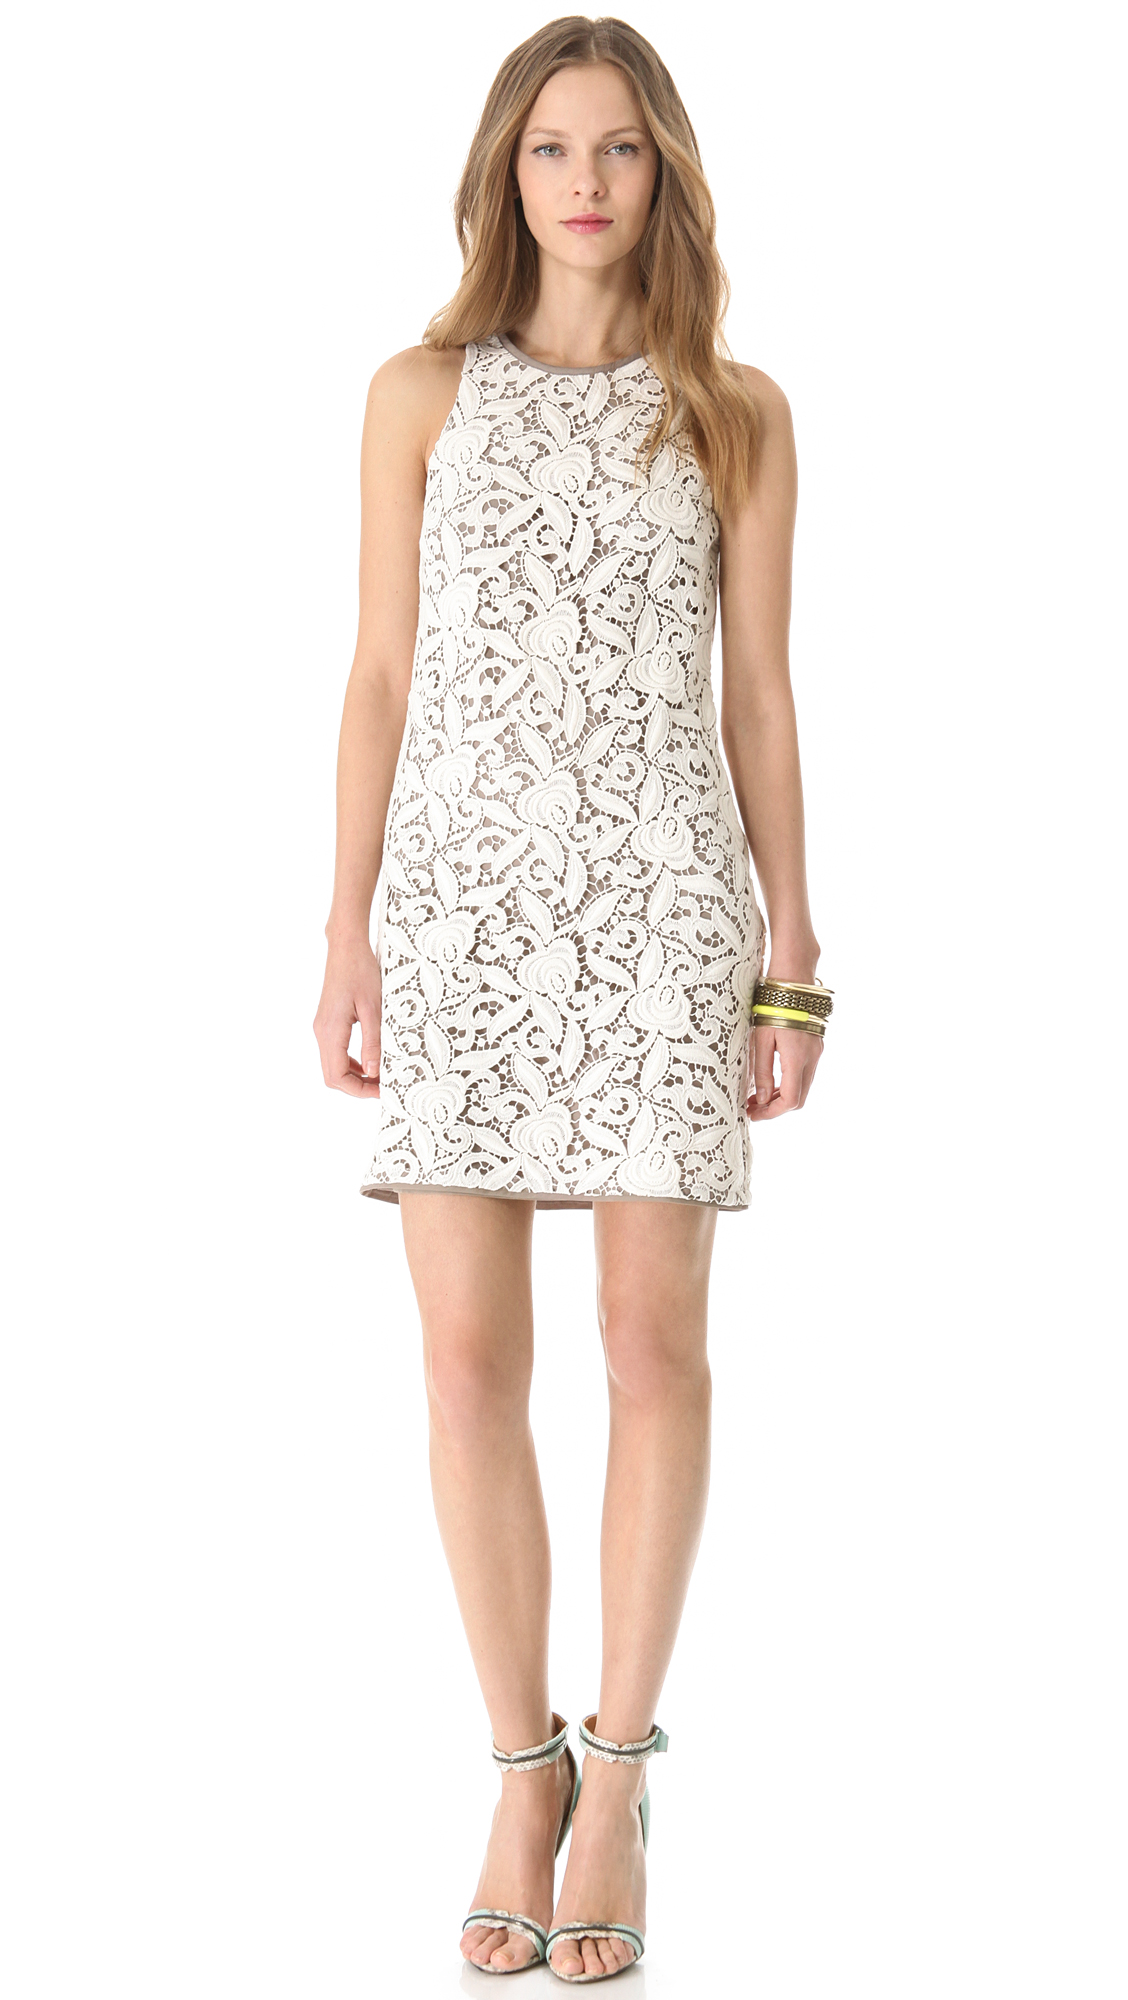 Lyst - Juicy Couture Guipure Lace Dress in White